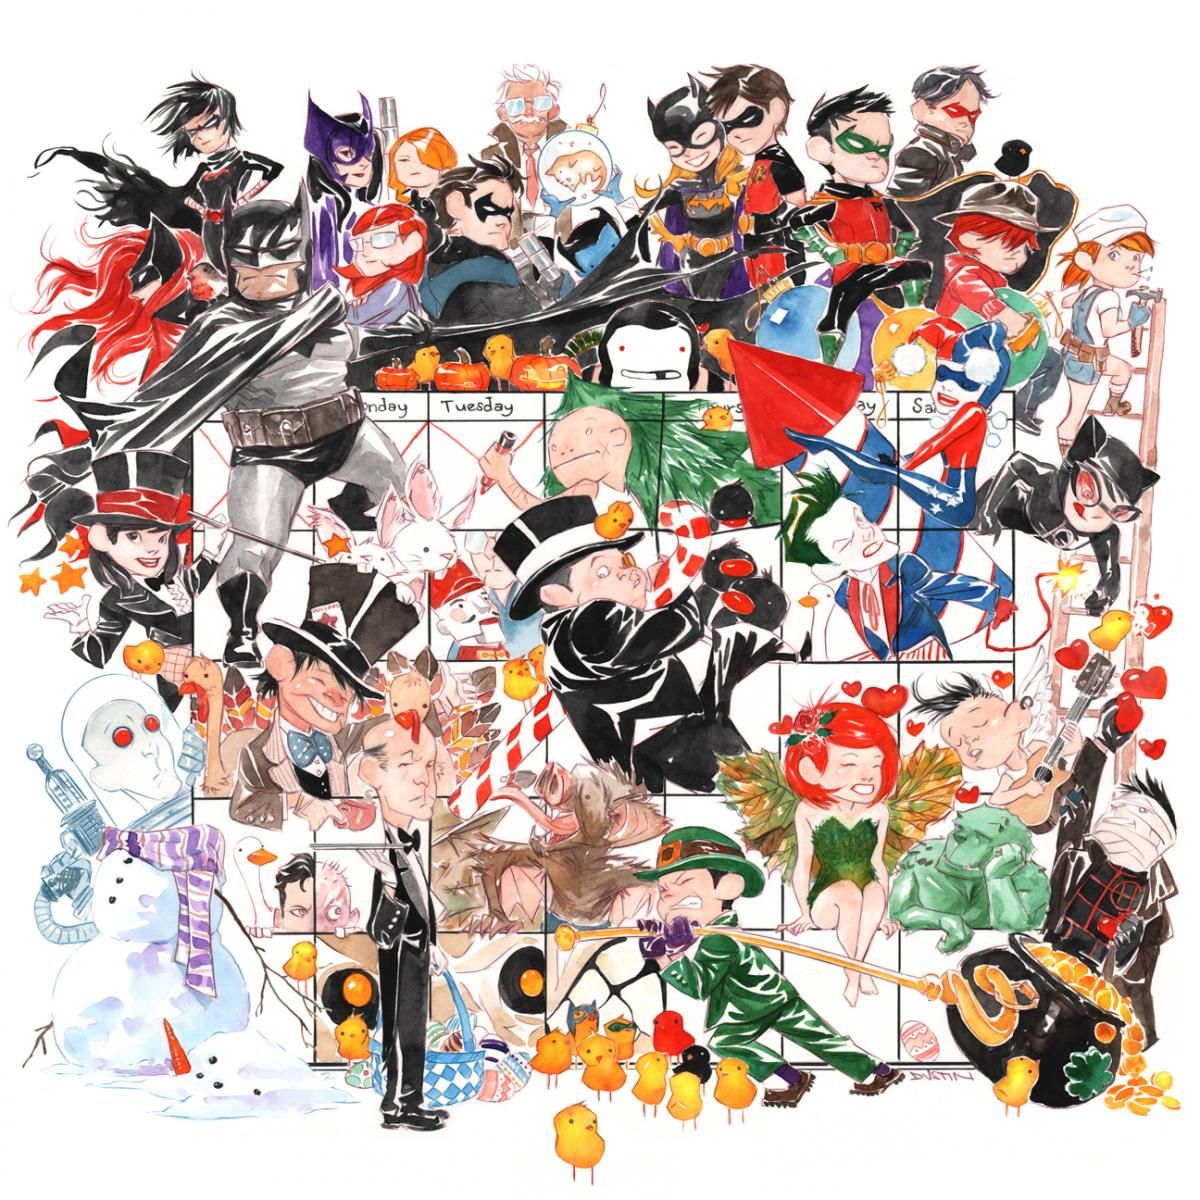 dustin nguyen 22 jump streetdustin nguyen art, dustin nguyen instagram, dustin nguyen artist, dustin nguyen comics, dustin nguyen art for sale, dustin nguyen watercolor, dustin nguyen deviantart, dustin nguyen twitter, dustin nguyen, dustin nguyen movies, dustin nguyen wiki, dustin nguyen tumblr, dustin nguyen batman, dustin nguyen net worth, dustin nguyen va vo cu, dustin nguyễn và vợ, dustin nguyen 22 jump street, dustin nguyen and his wife, dustin nguyen height, dustin nguyen imdb